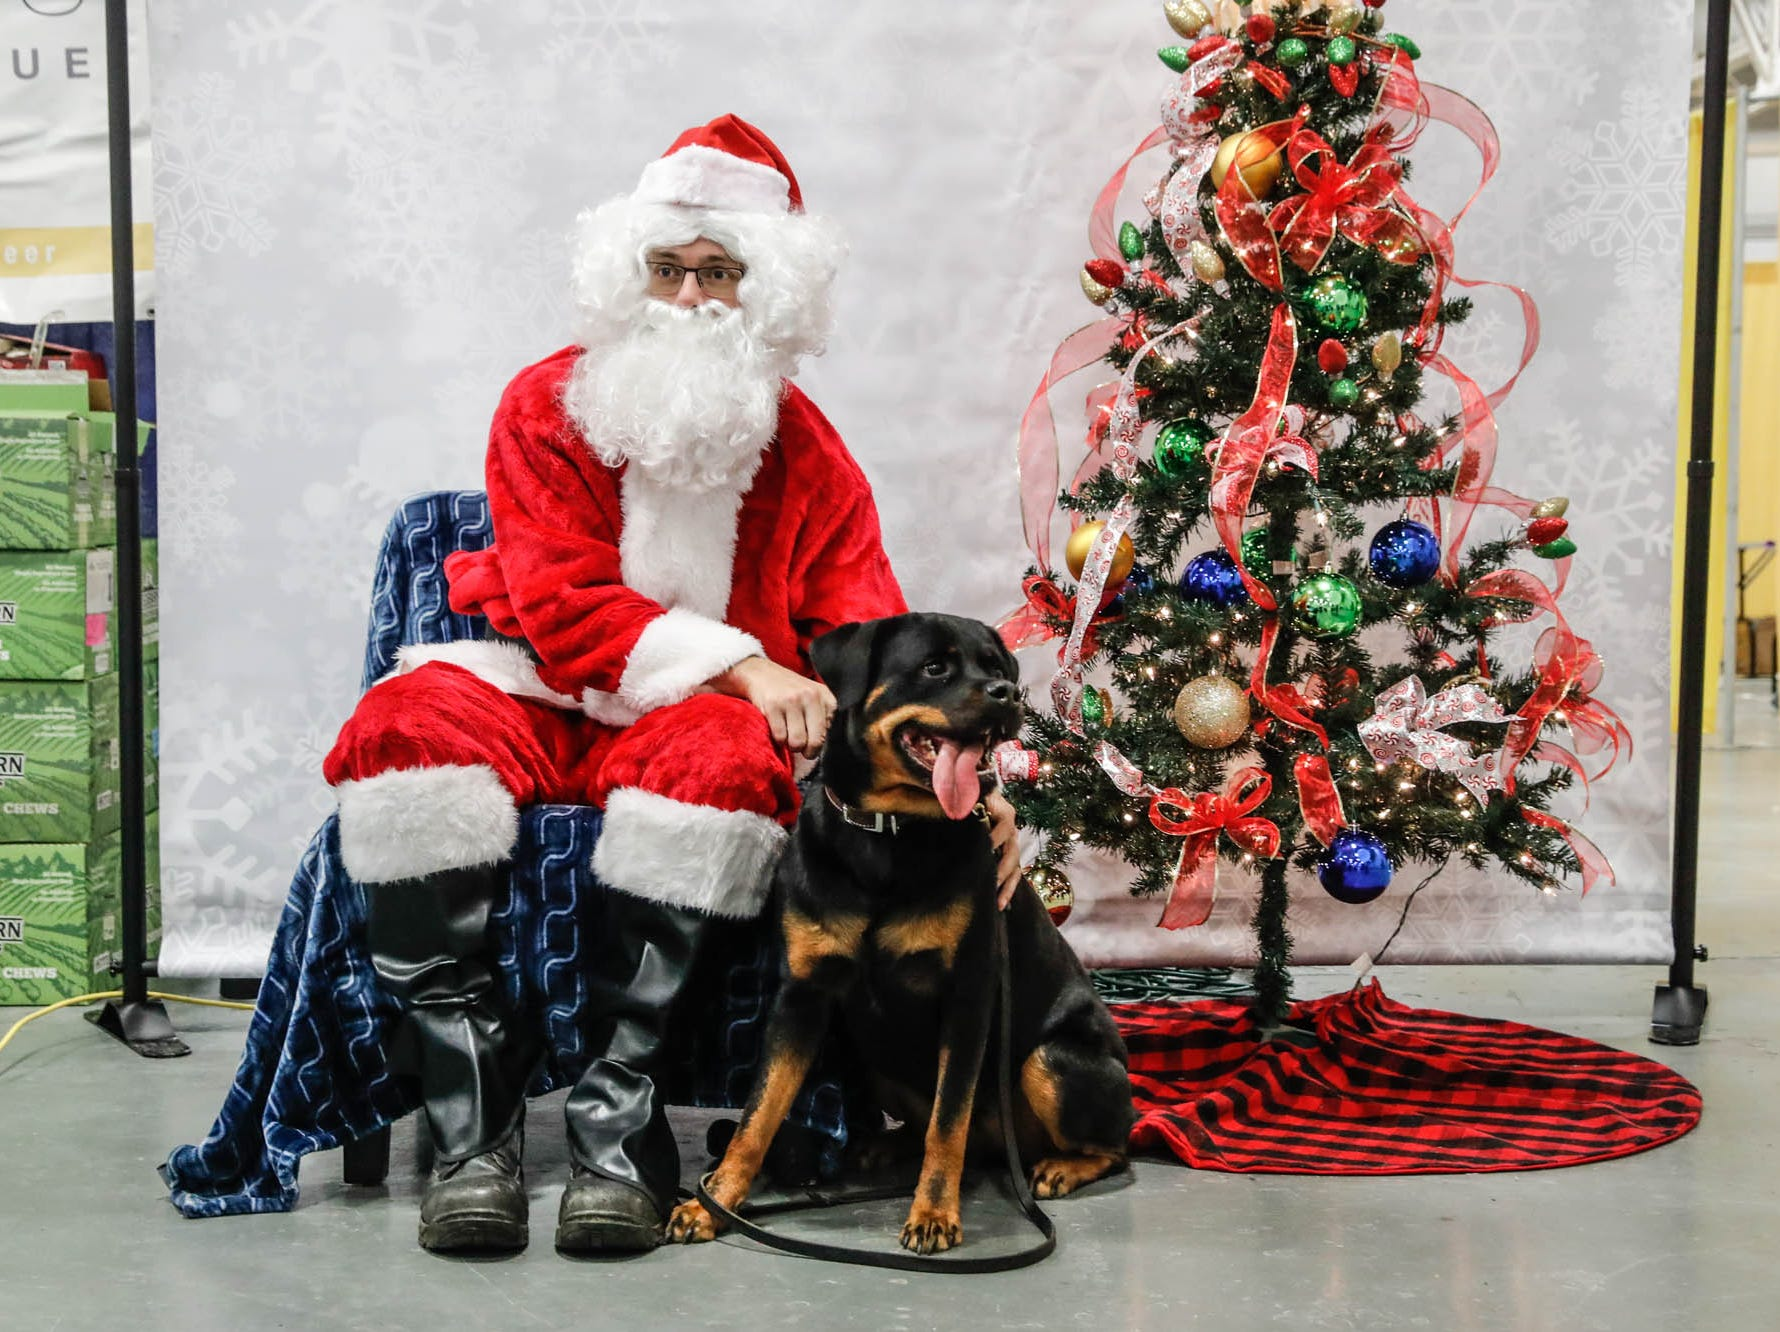 Pax, a dog, has her photo taken with Santa at the Great Indy Pet Expo, held at the Indiana State Fairgrounds on Sat. Nov. 10, 2018.